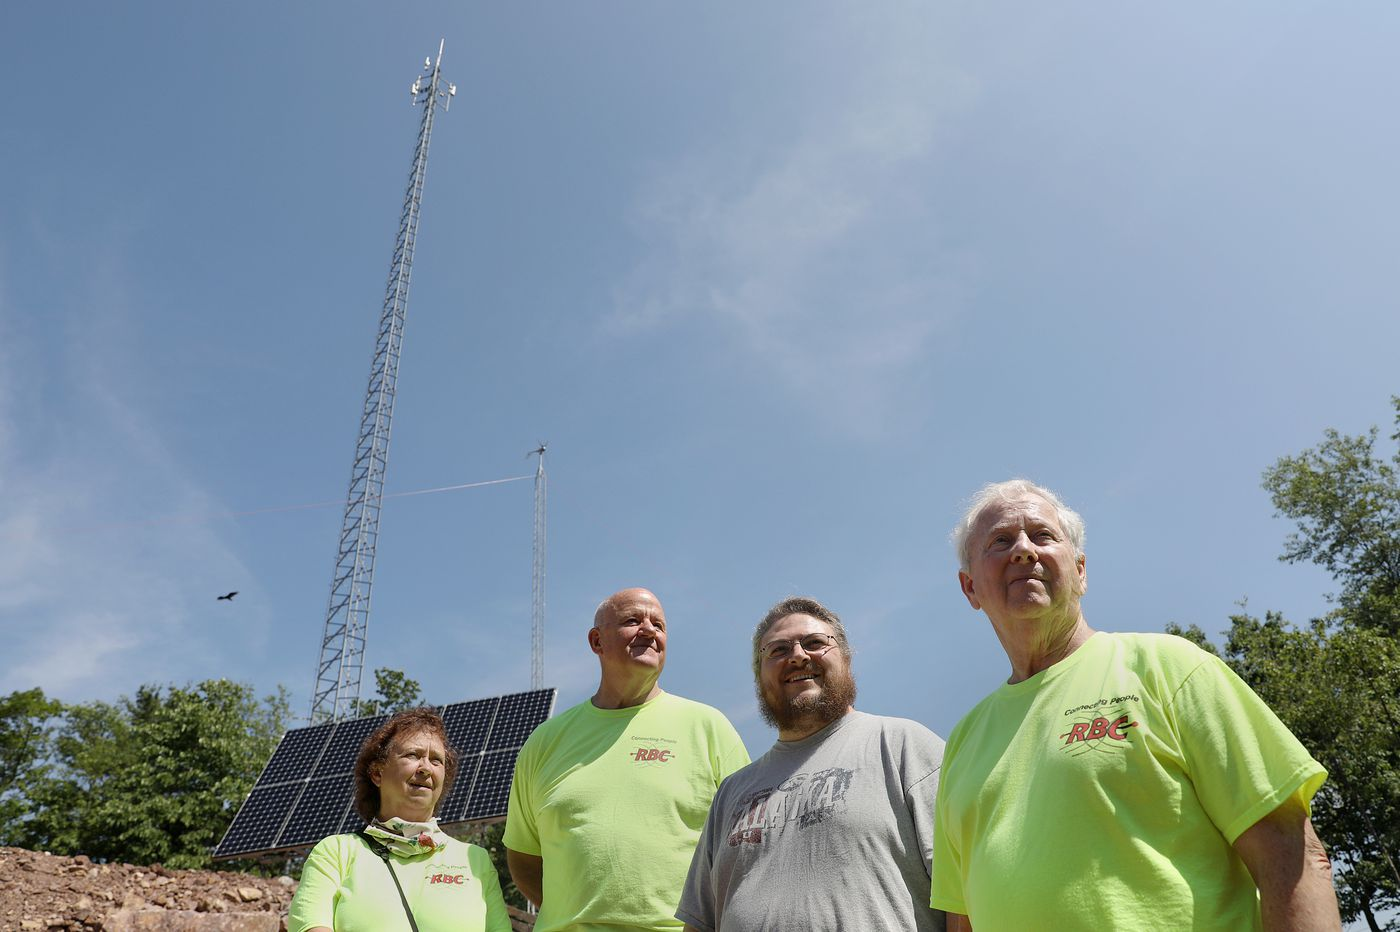 Internet speeds were awful, so these rural Pennsylvanians put up their own wireless tower